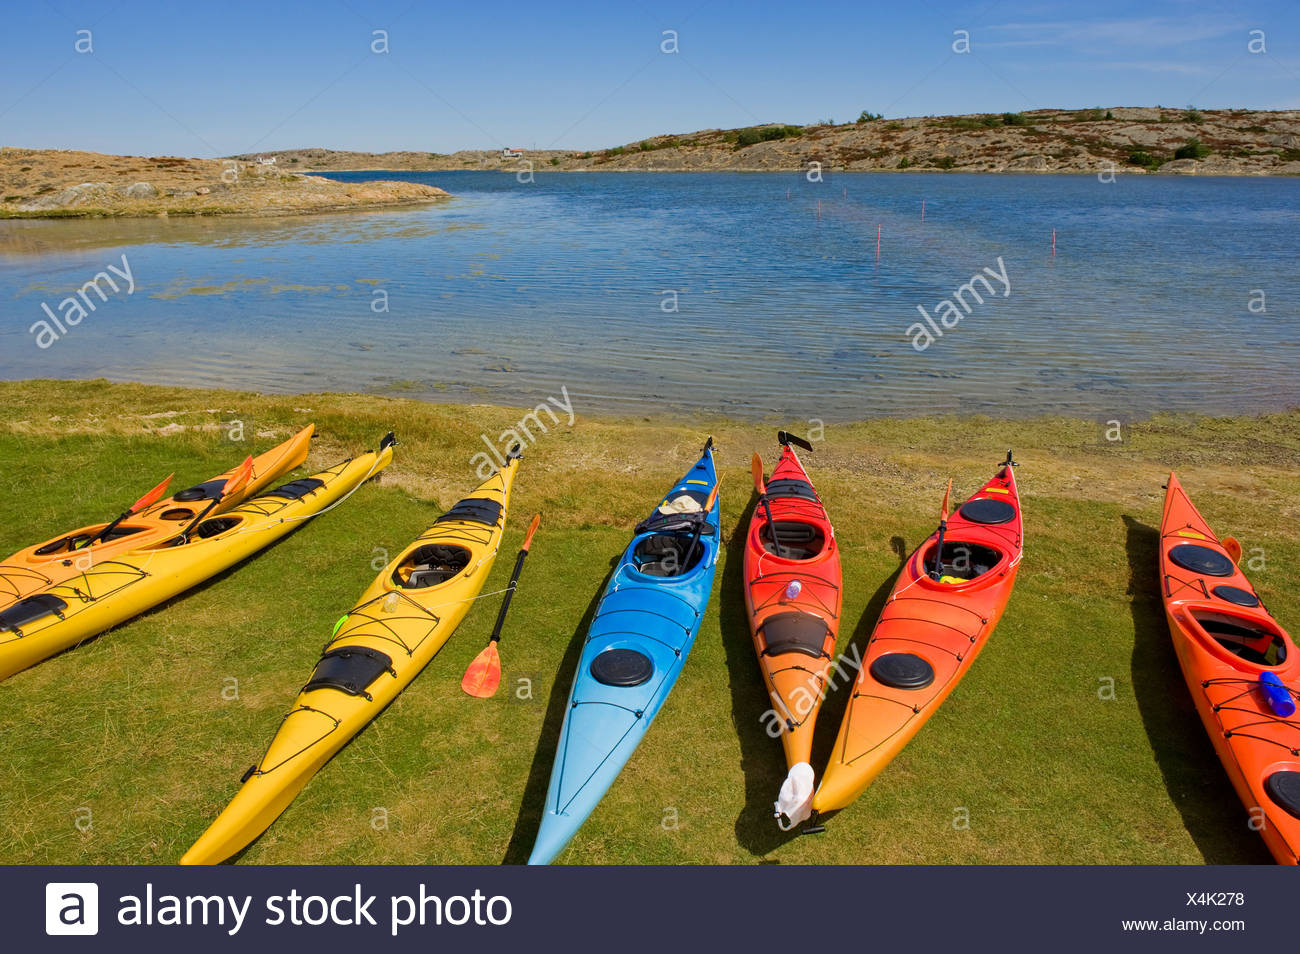 Several kayaks on grass by the calm sea - Stock Image